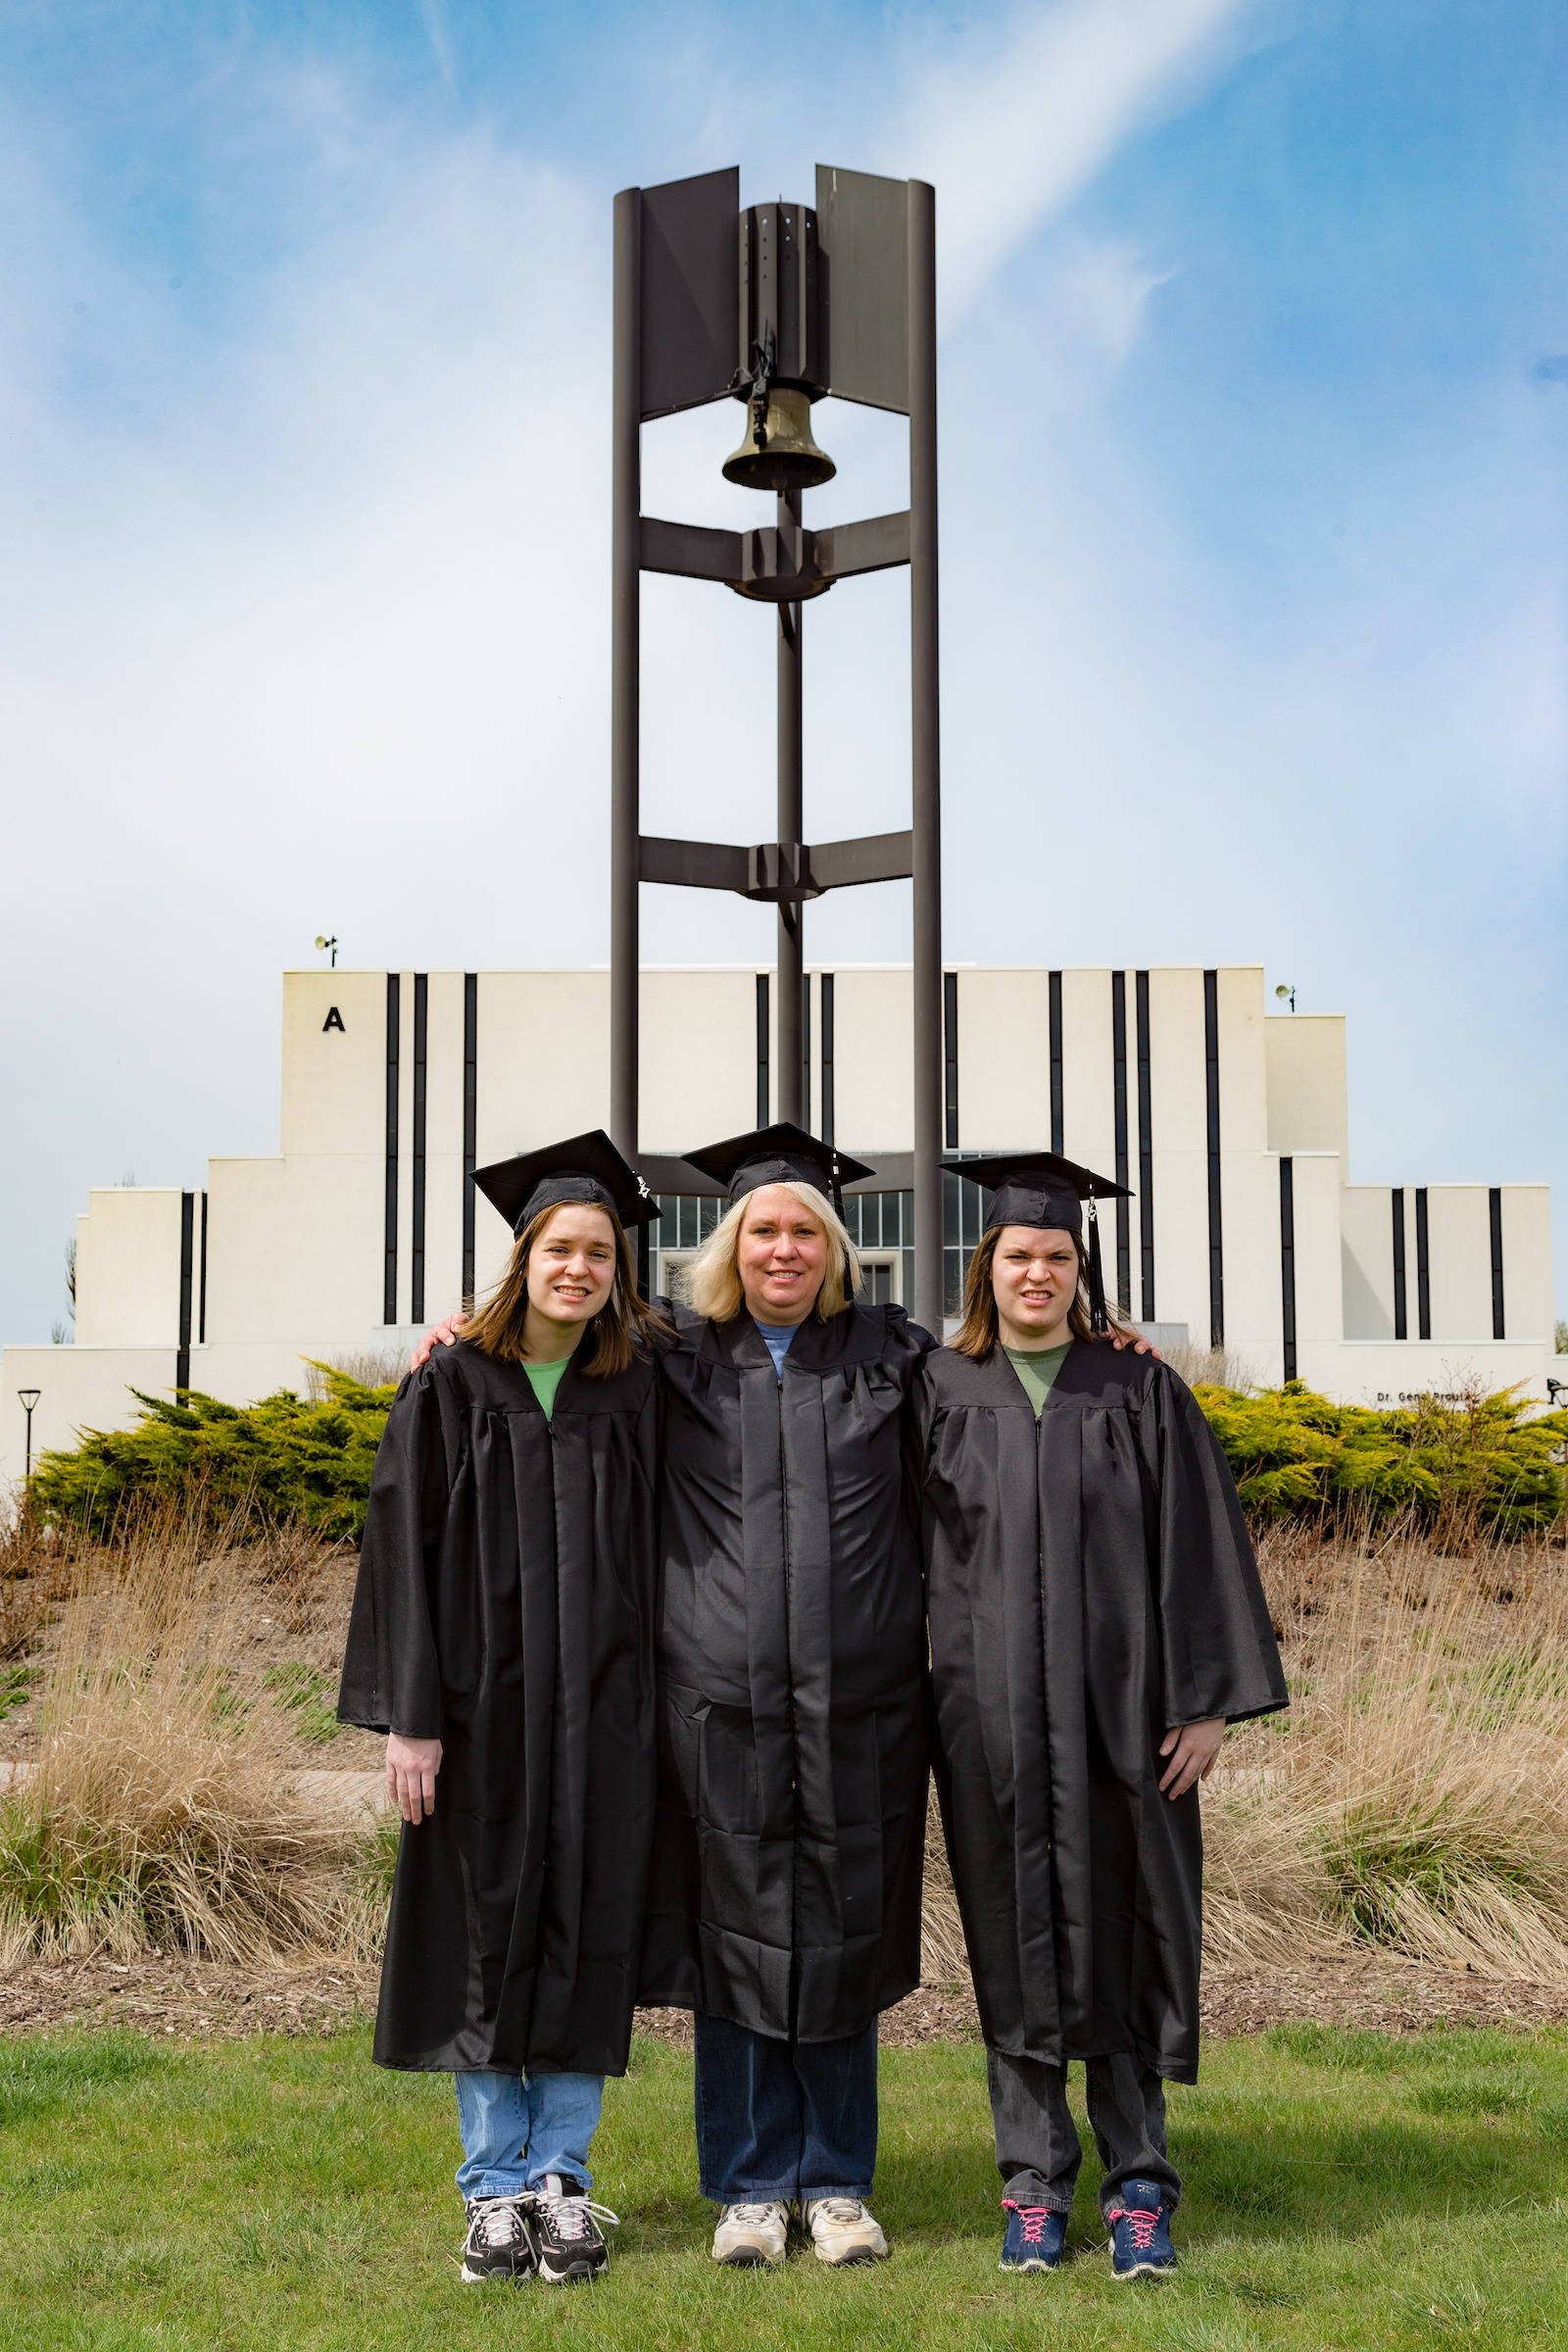 Q&A: The Bopp Family Shares Their Unique Graduation Story Amanda Ashley Audrey bell tower campus center